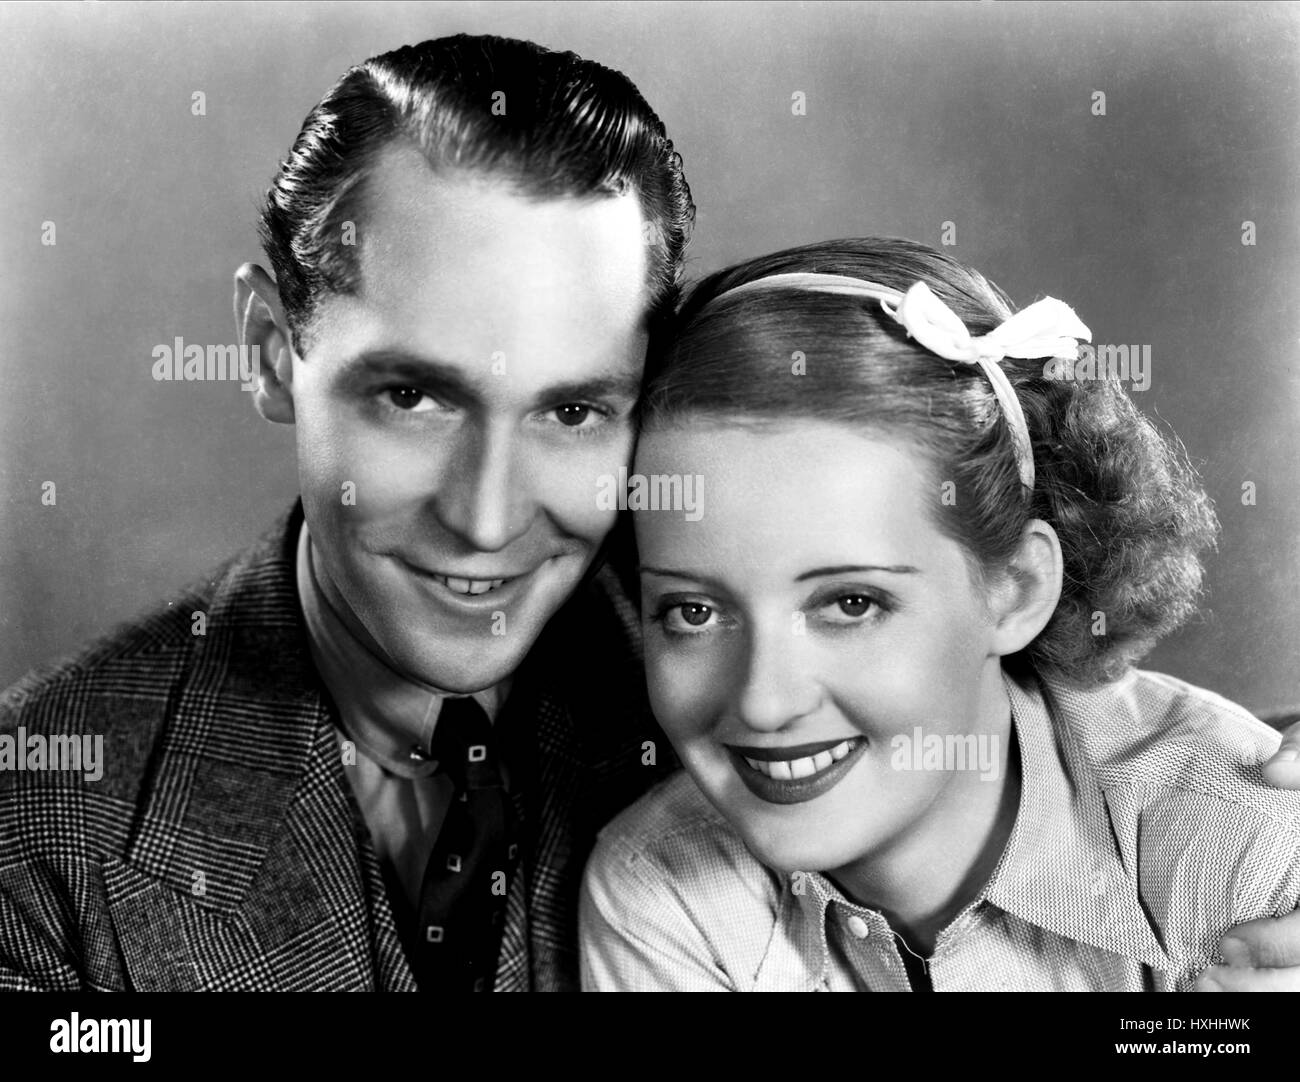 Allan as lucie manette colman had long wanted to play sydney car - Franchot Tone Bette Davis Dangerous 1935 Stock Image